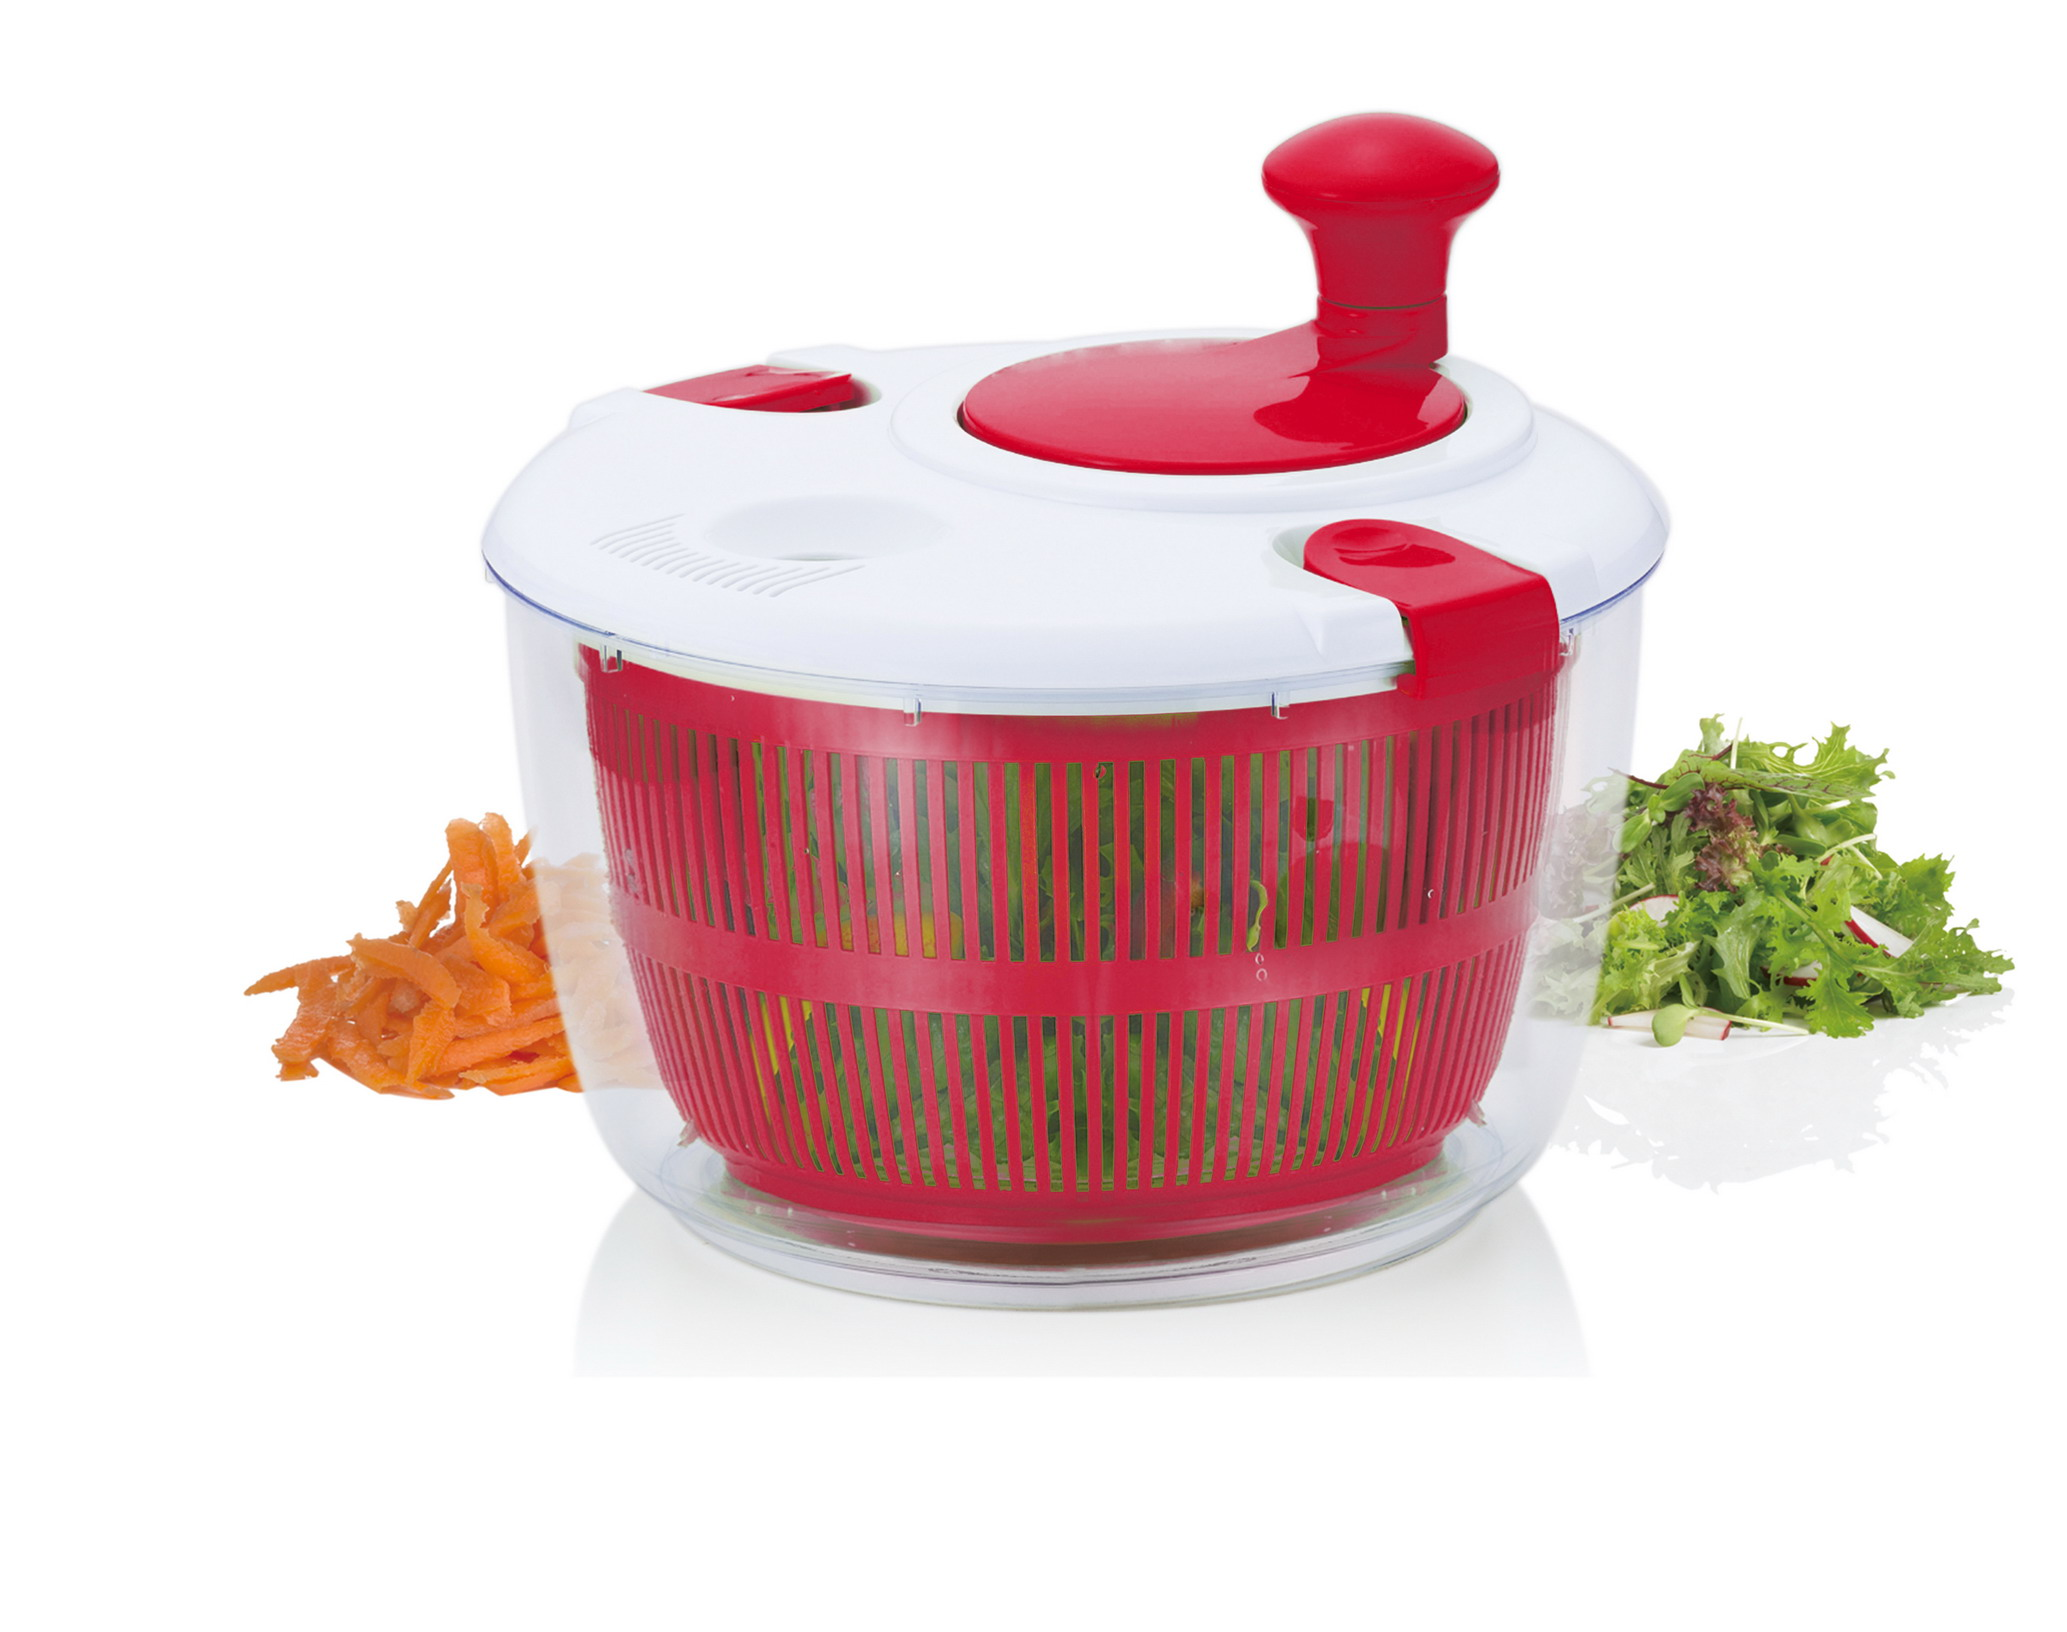 Brilliant Salad Spinner Vegetable Dryer, Red by